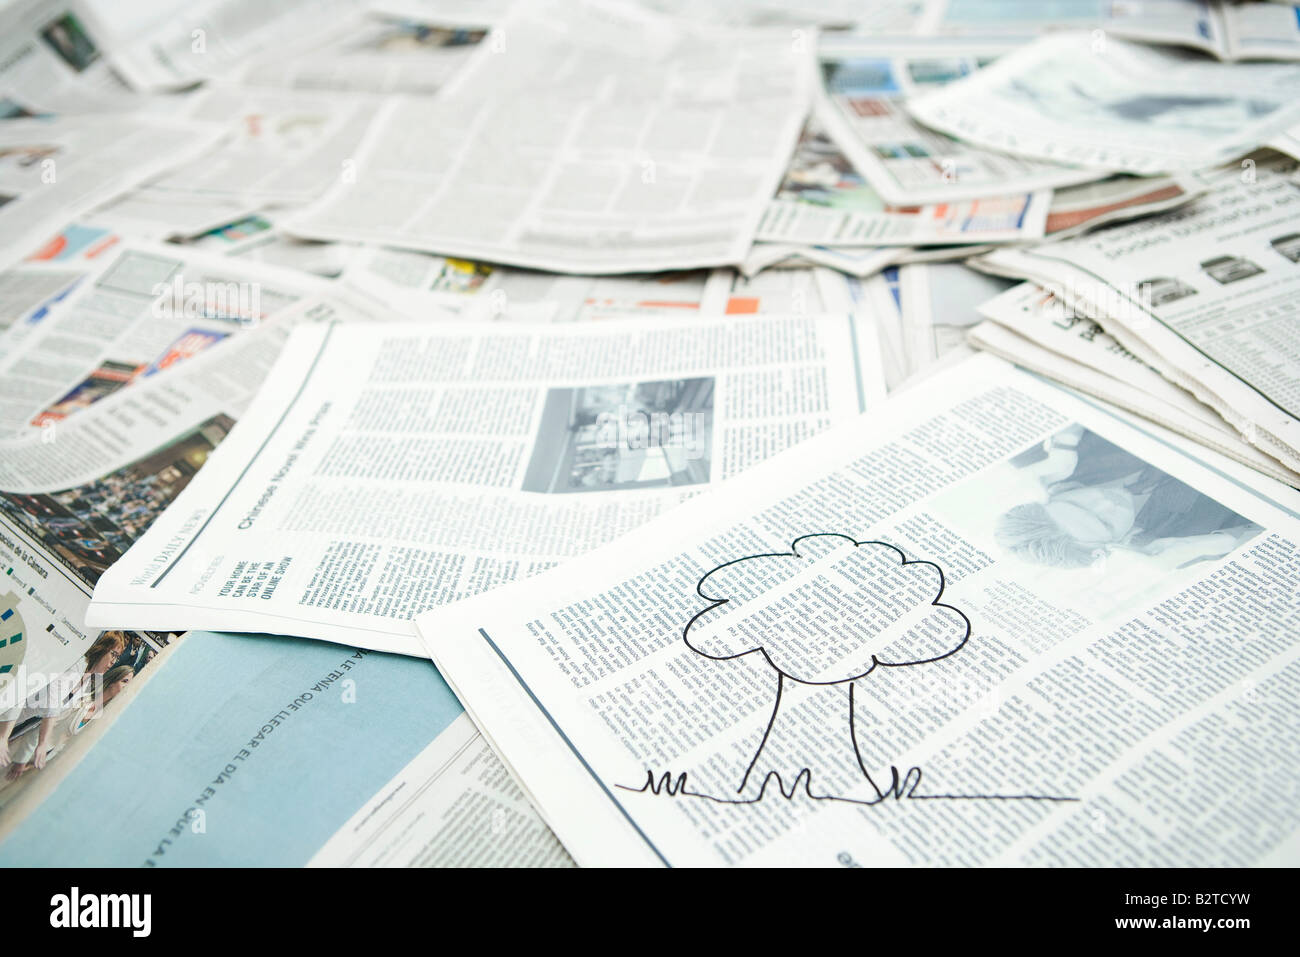 Drawing of tree on pile of newspaper - Stock Image